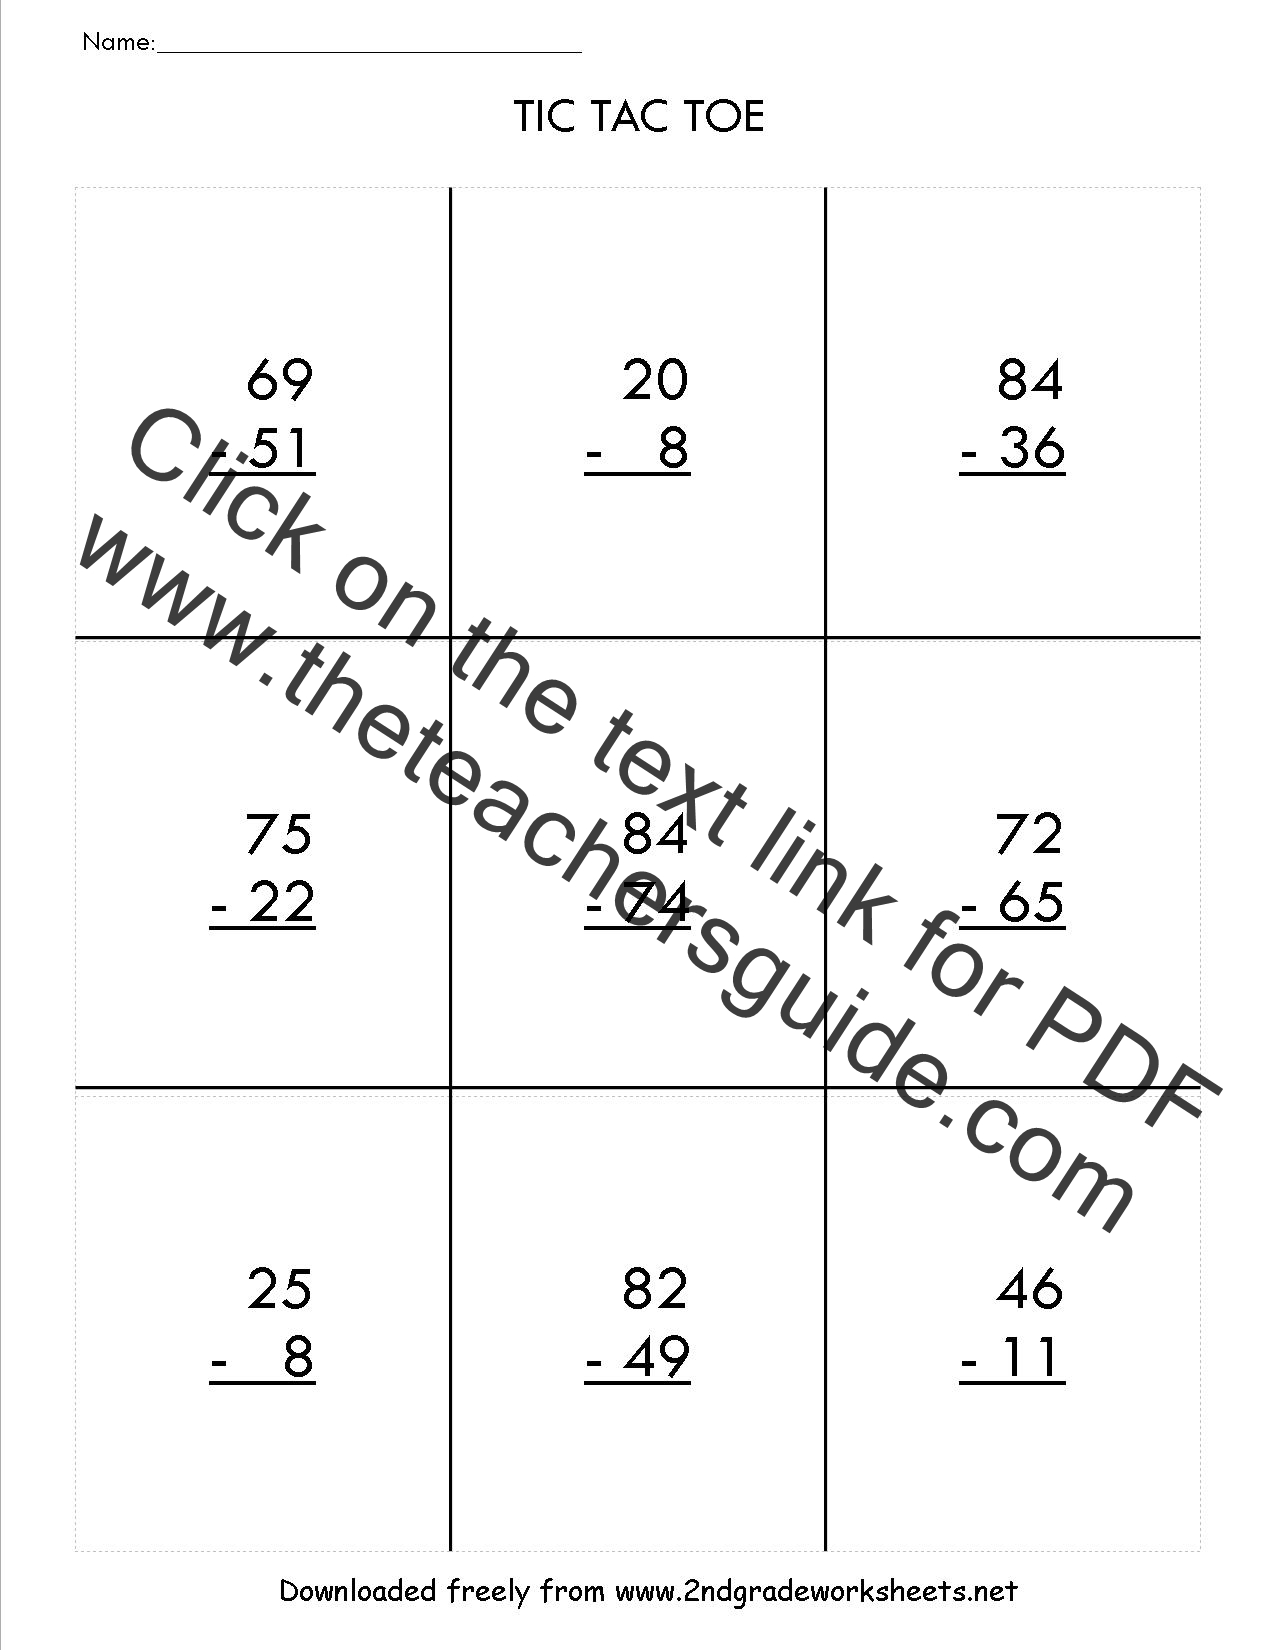 Two Digit Subtraction Worksheets – Two Digit Subtraction with Regrouping Worksheet